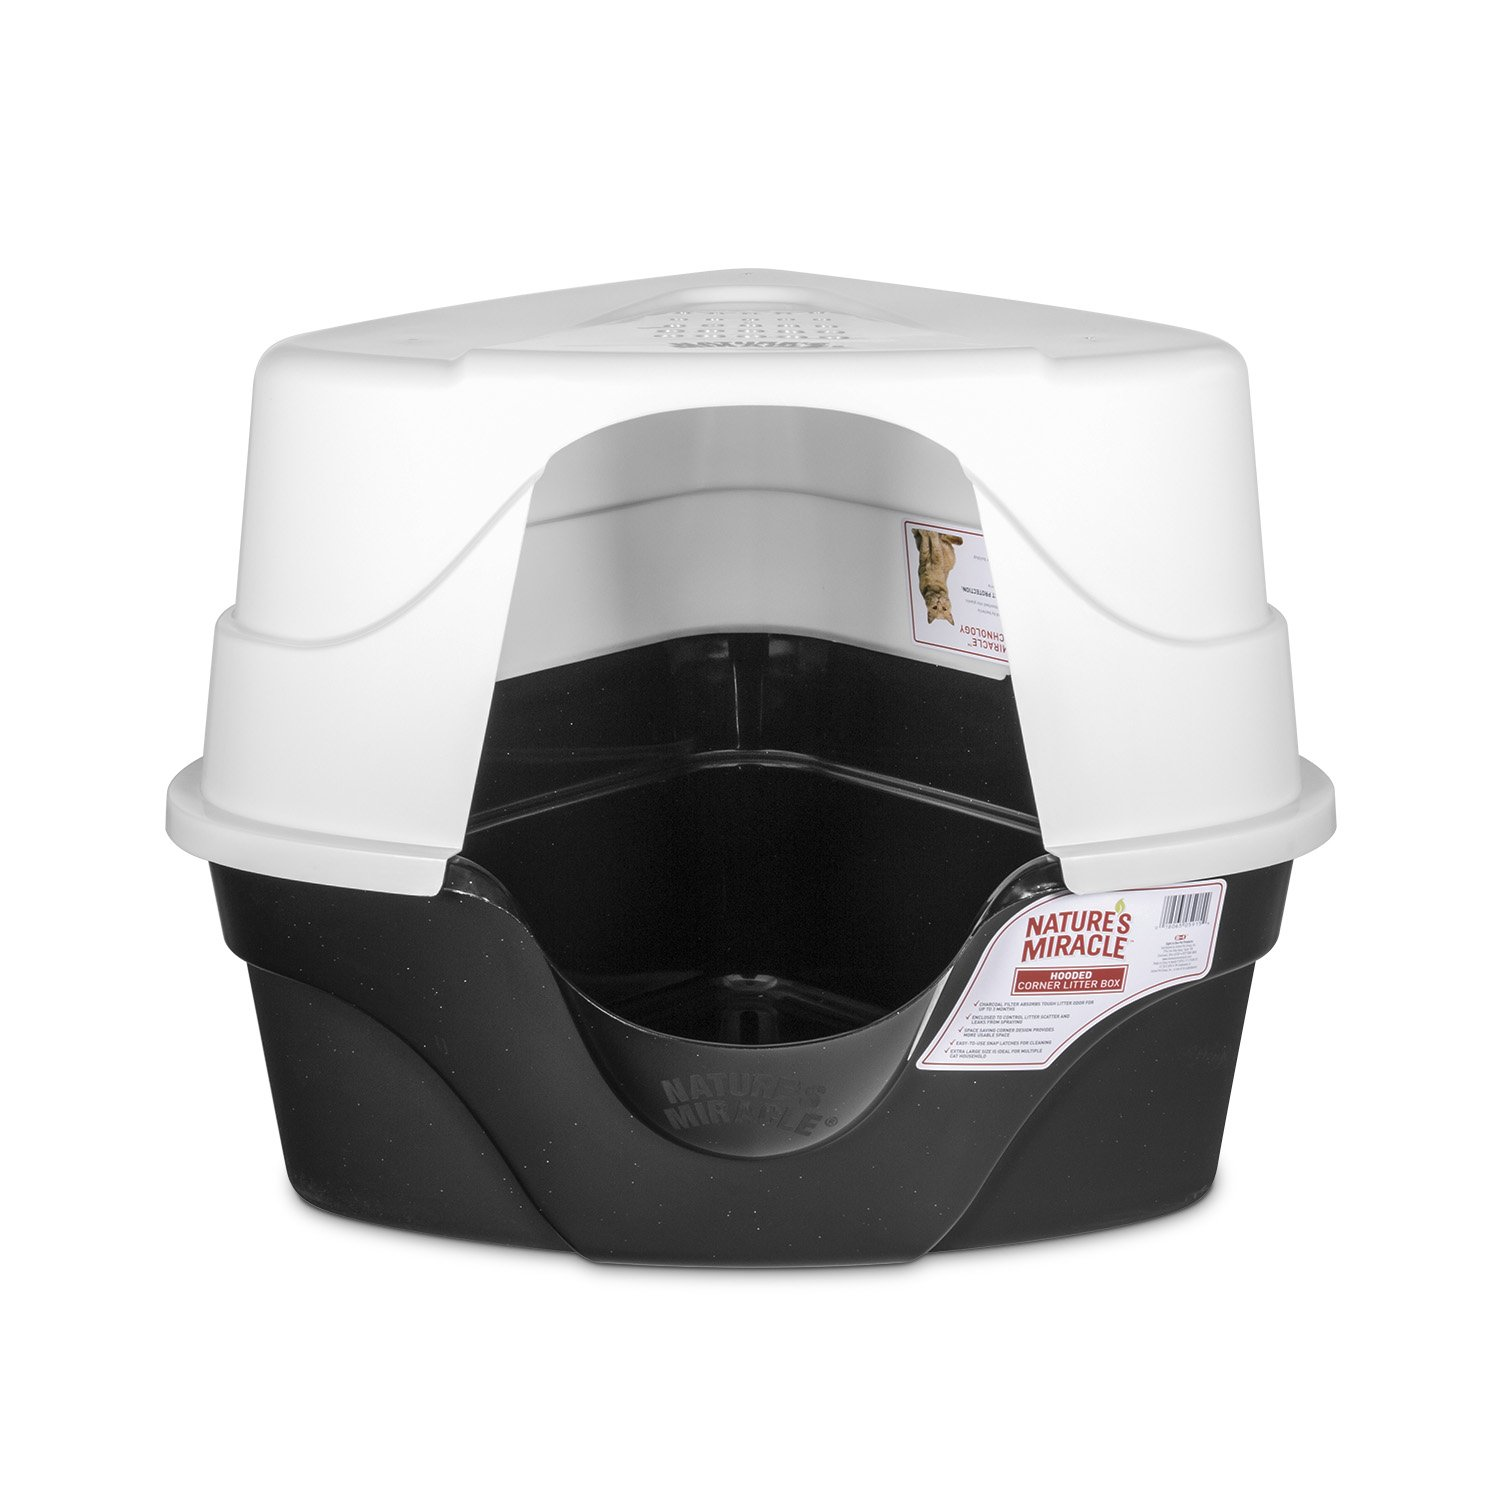 Nature's Miracle Advanced Hooded Corner Litter Box (P-5915) by Nature's Miracle (Image #4)